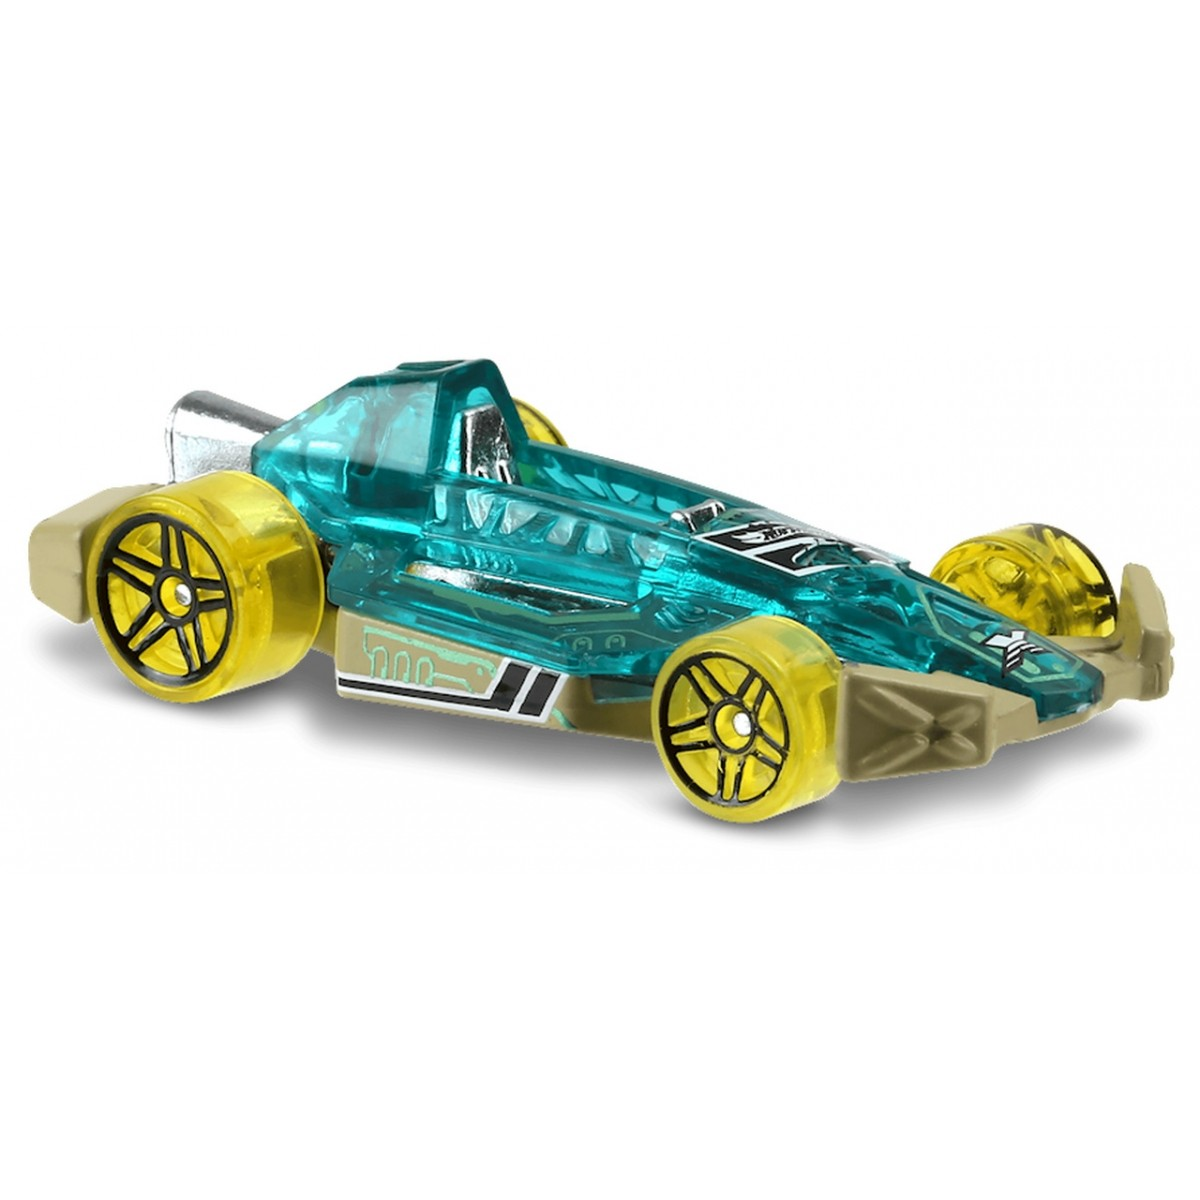 Carrinho Hot Wheels: Arrow Dynamic Verde Claro